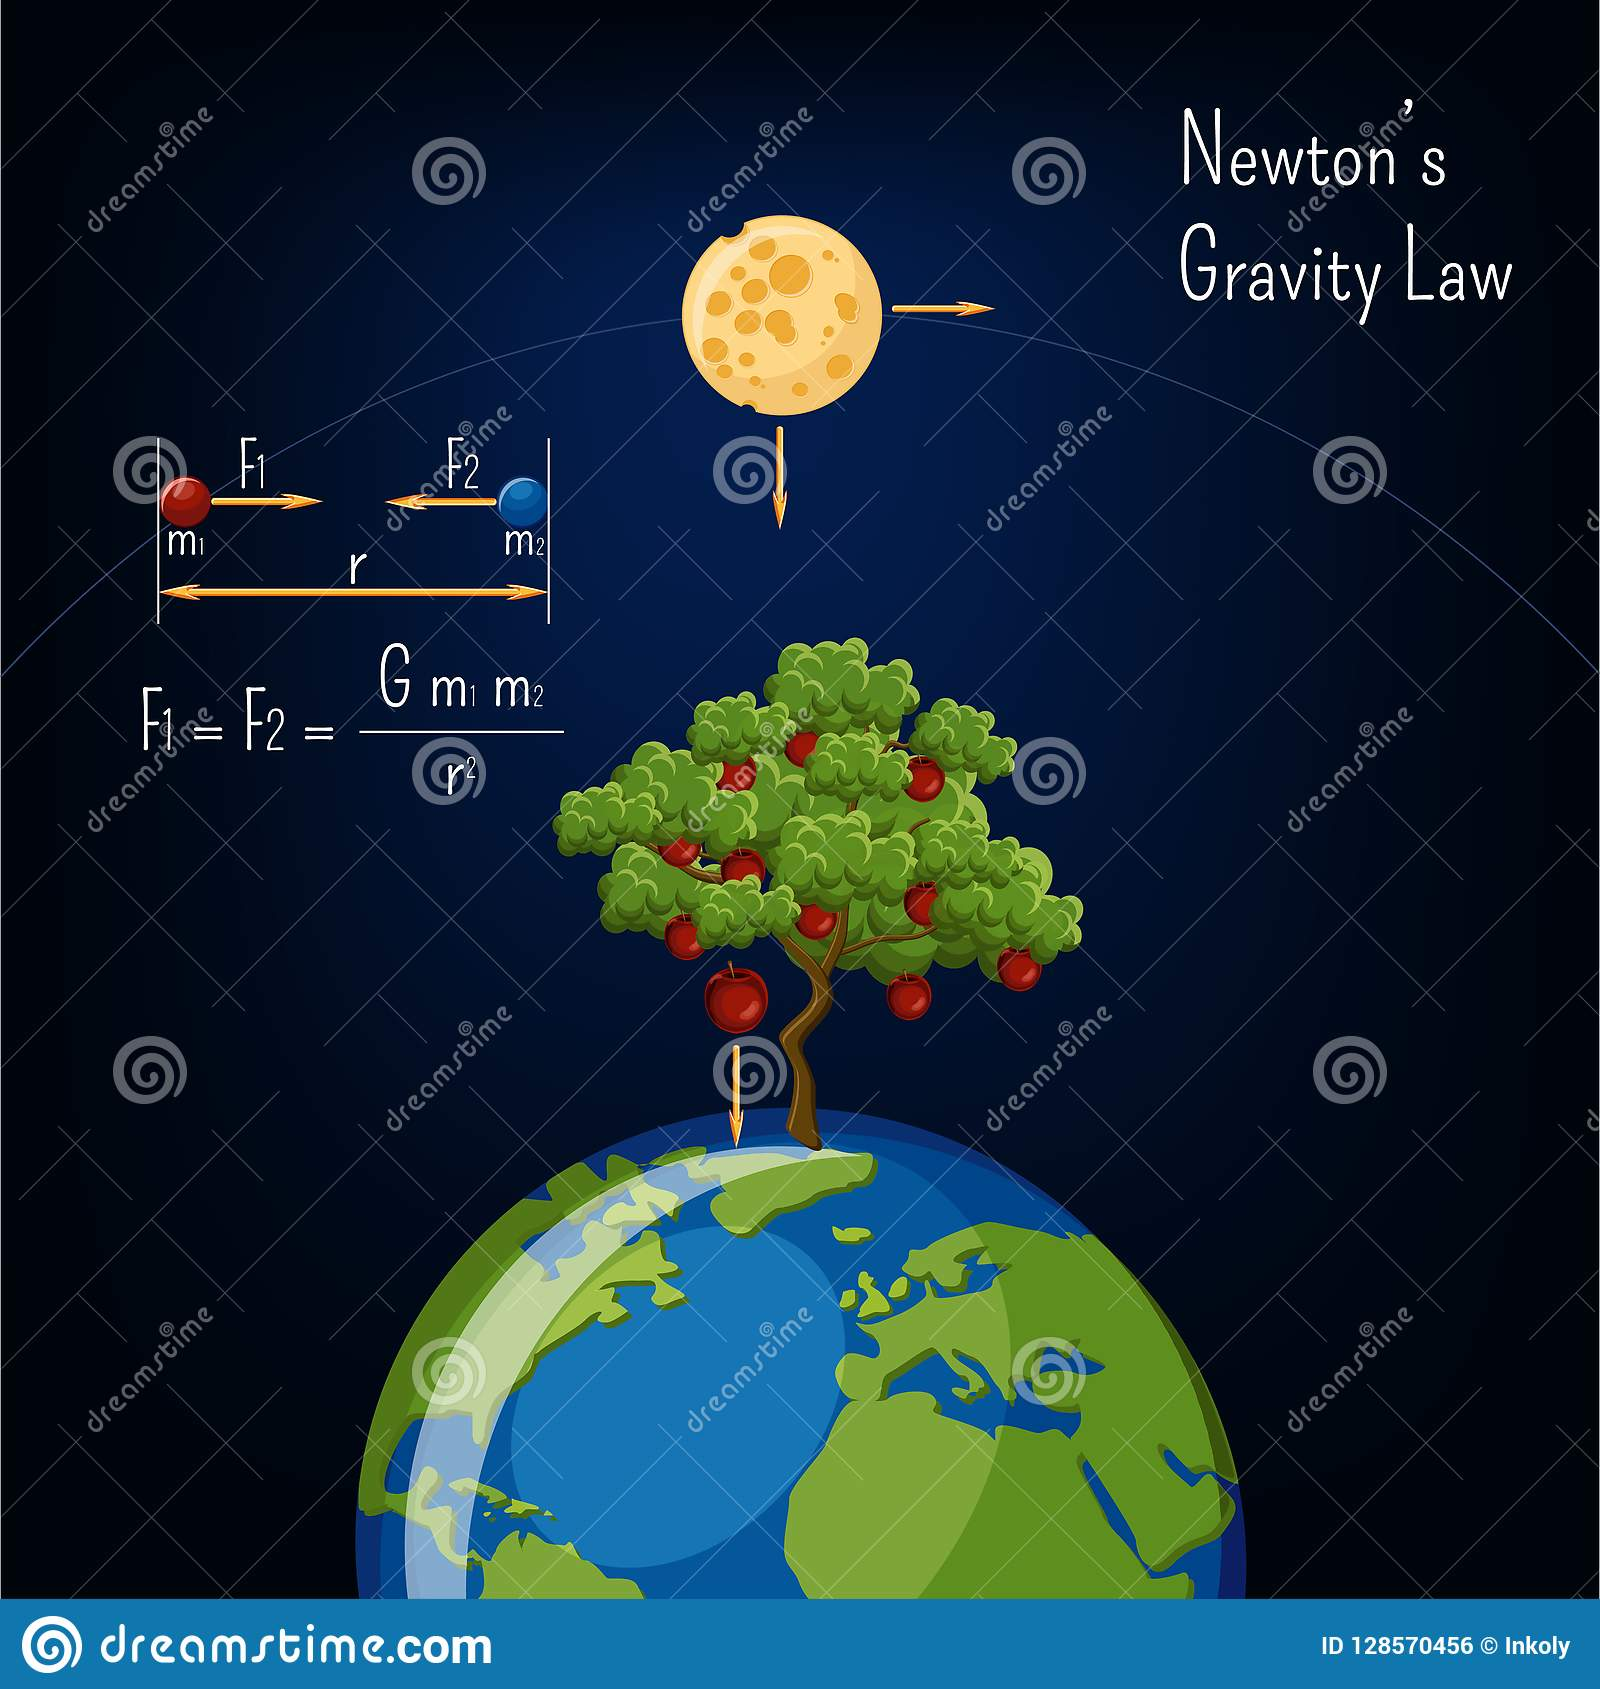 Newton`s Gravity Law Infographic With Earth Globe, Moon, Apple Tree